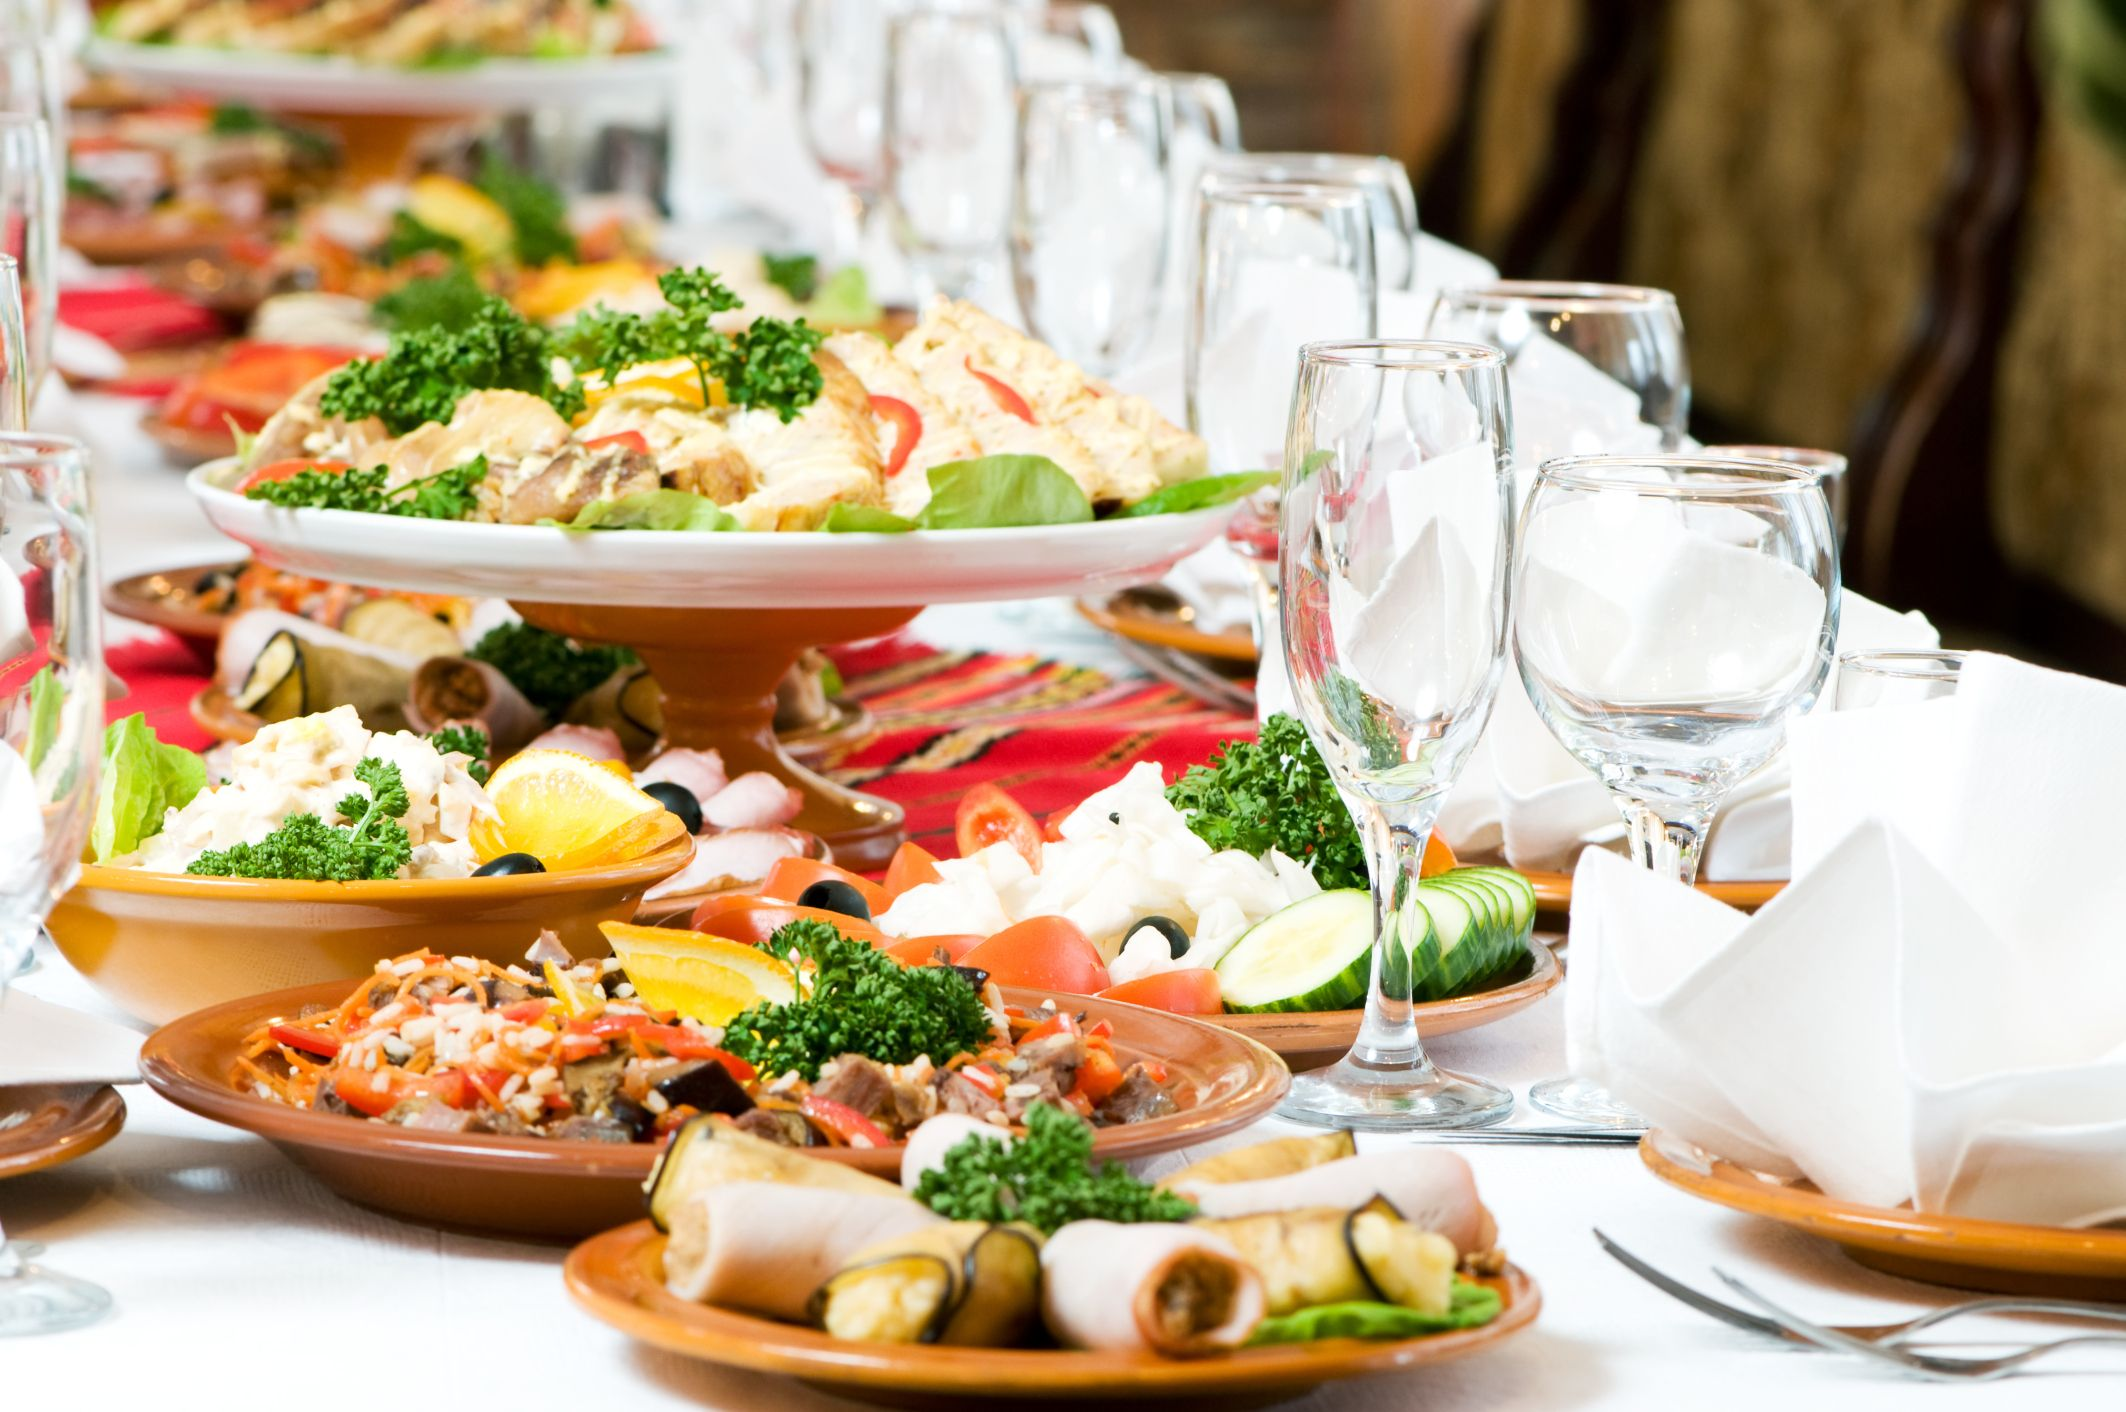 Best Bengali Caterers Services Delhi At Anupam Caterers Call 91 9810344741 Get Best Price Quotes Catering Food Reception Food Food Hacks